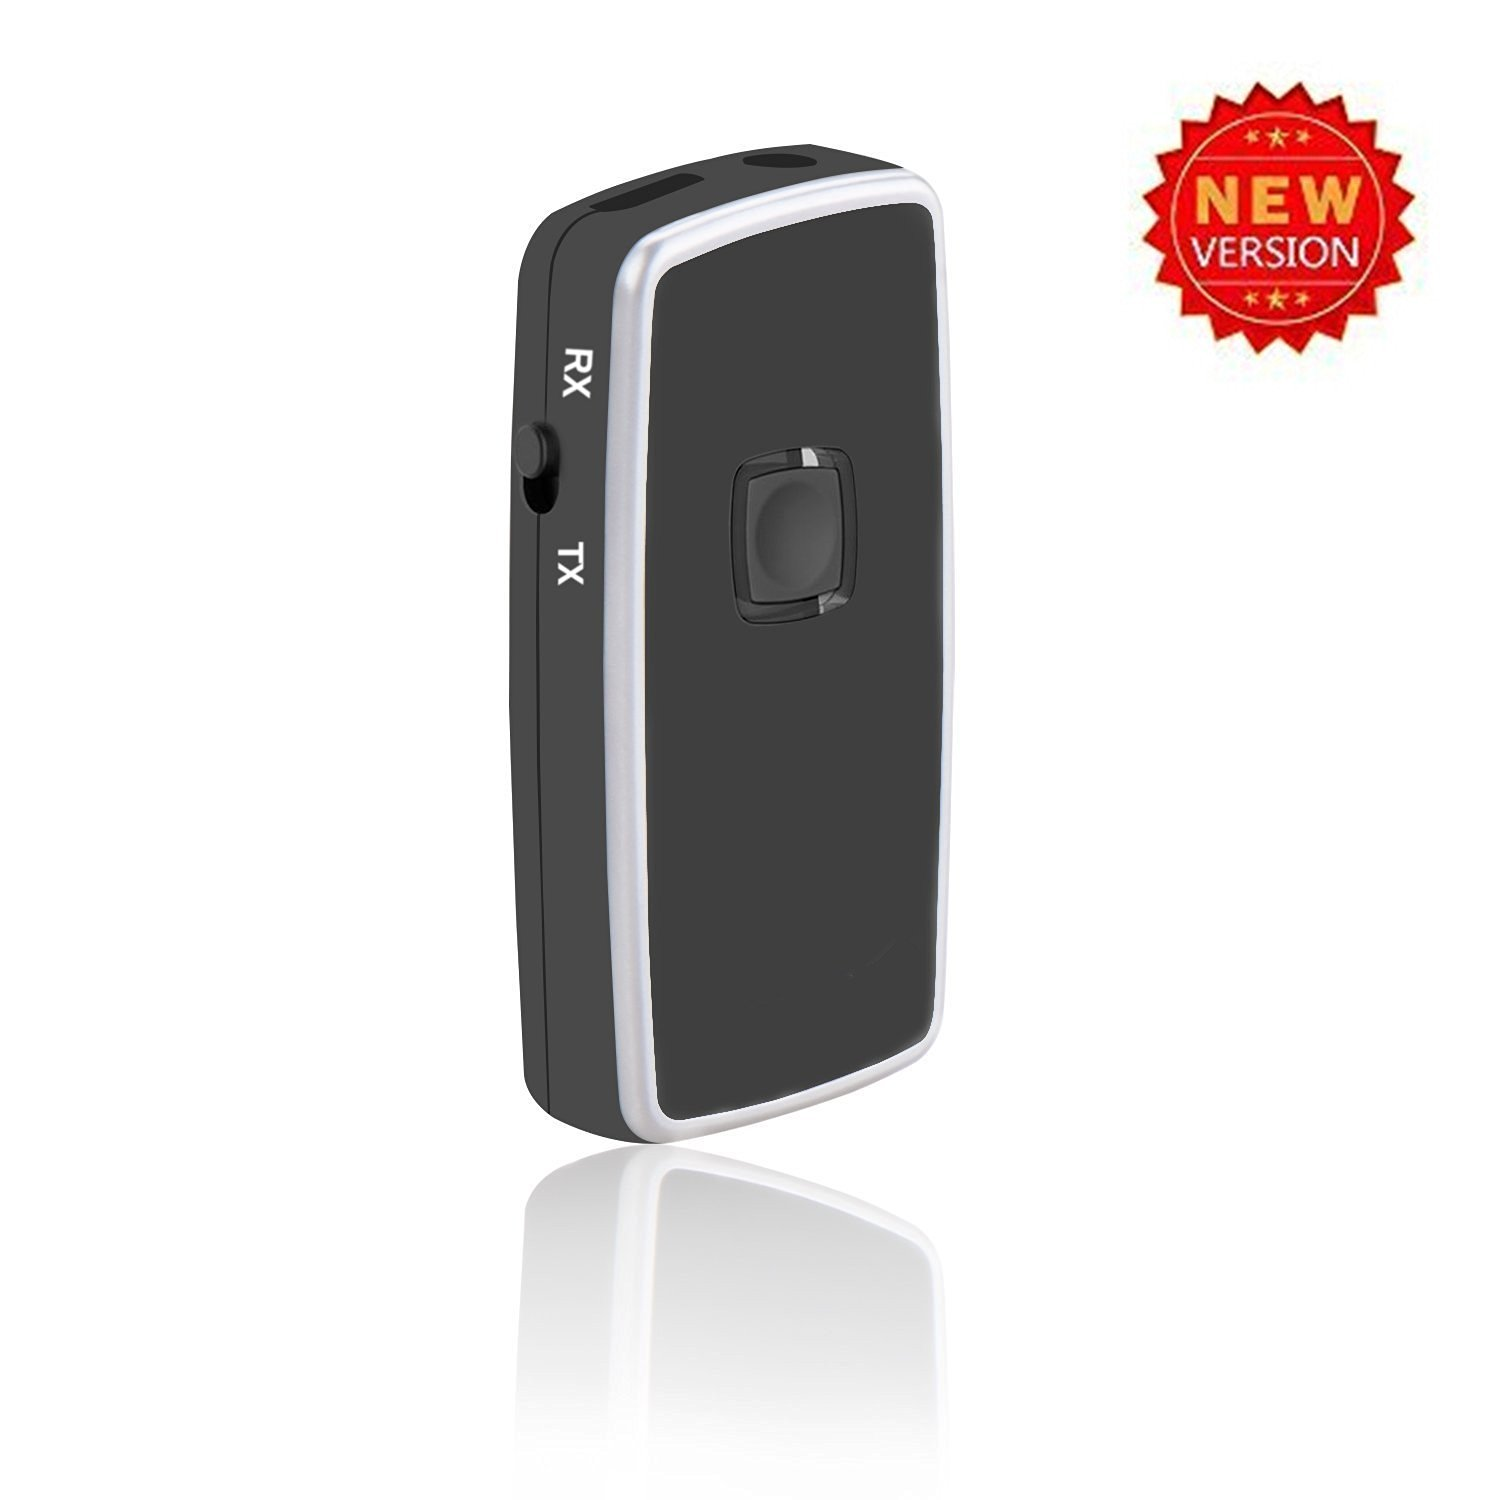 cheap mp3 player receiver find mp3 player receiver deals on line at rh guide alibaba com